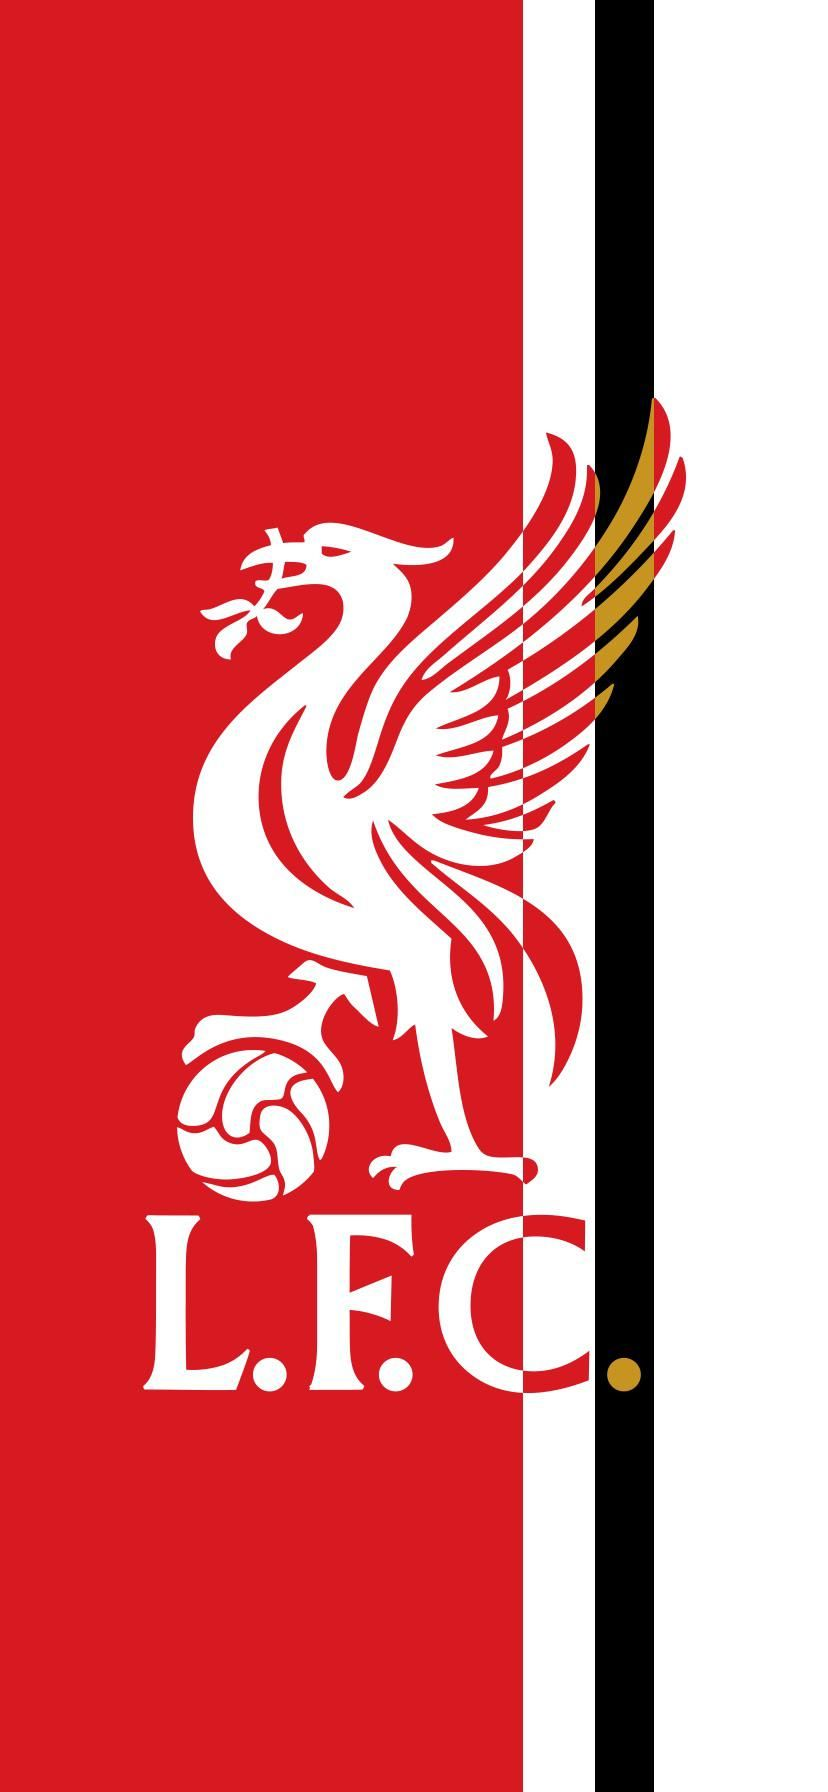 39+ Liverpool iphone wallpaper high quality